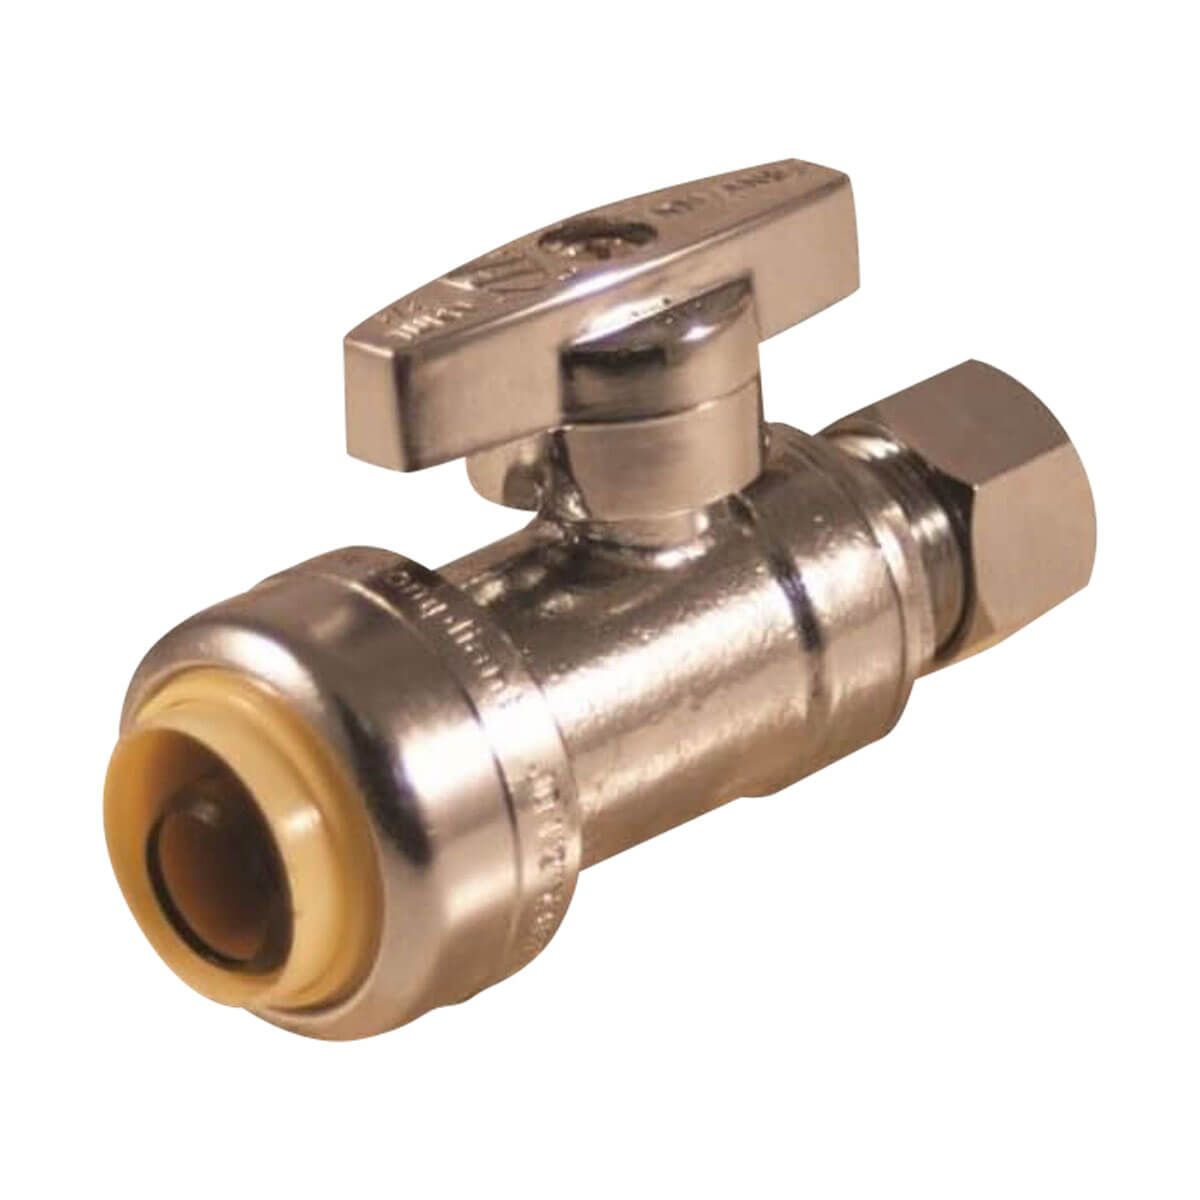 1/2-in Push-Fit X 3/8-in Compression Straight Valve